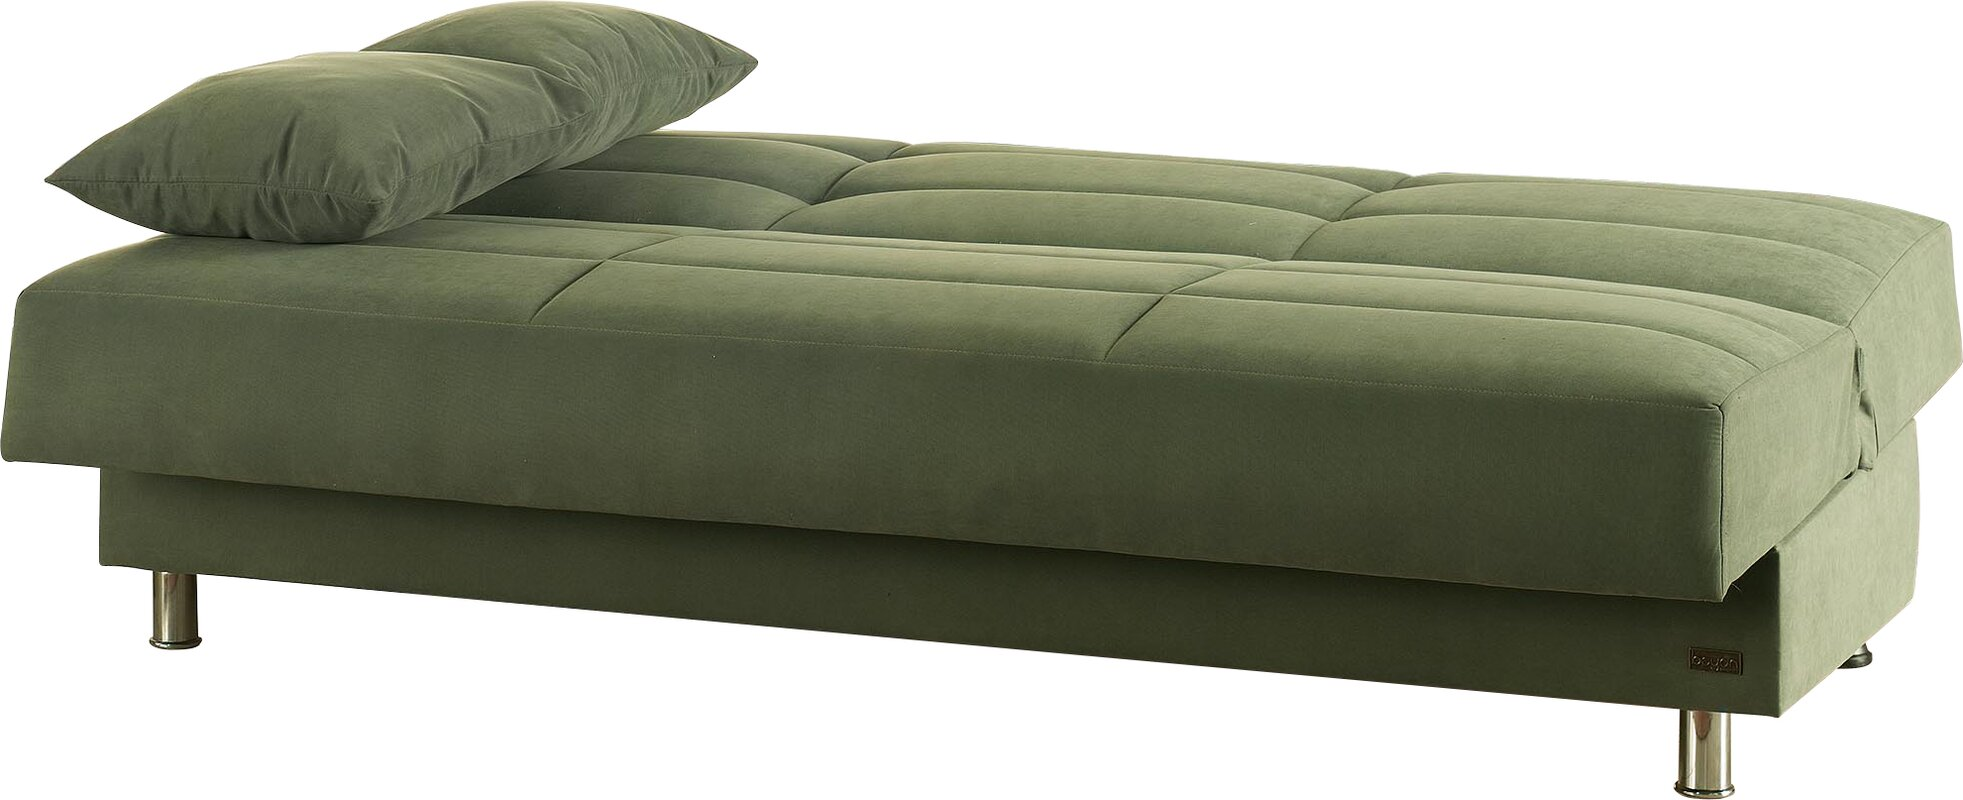 100 backless sofa bench uk com couch potato